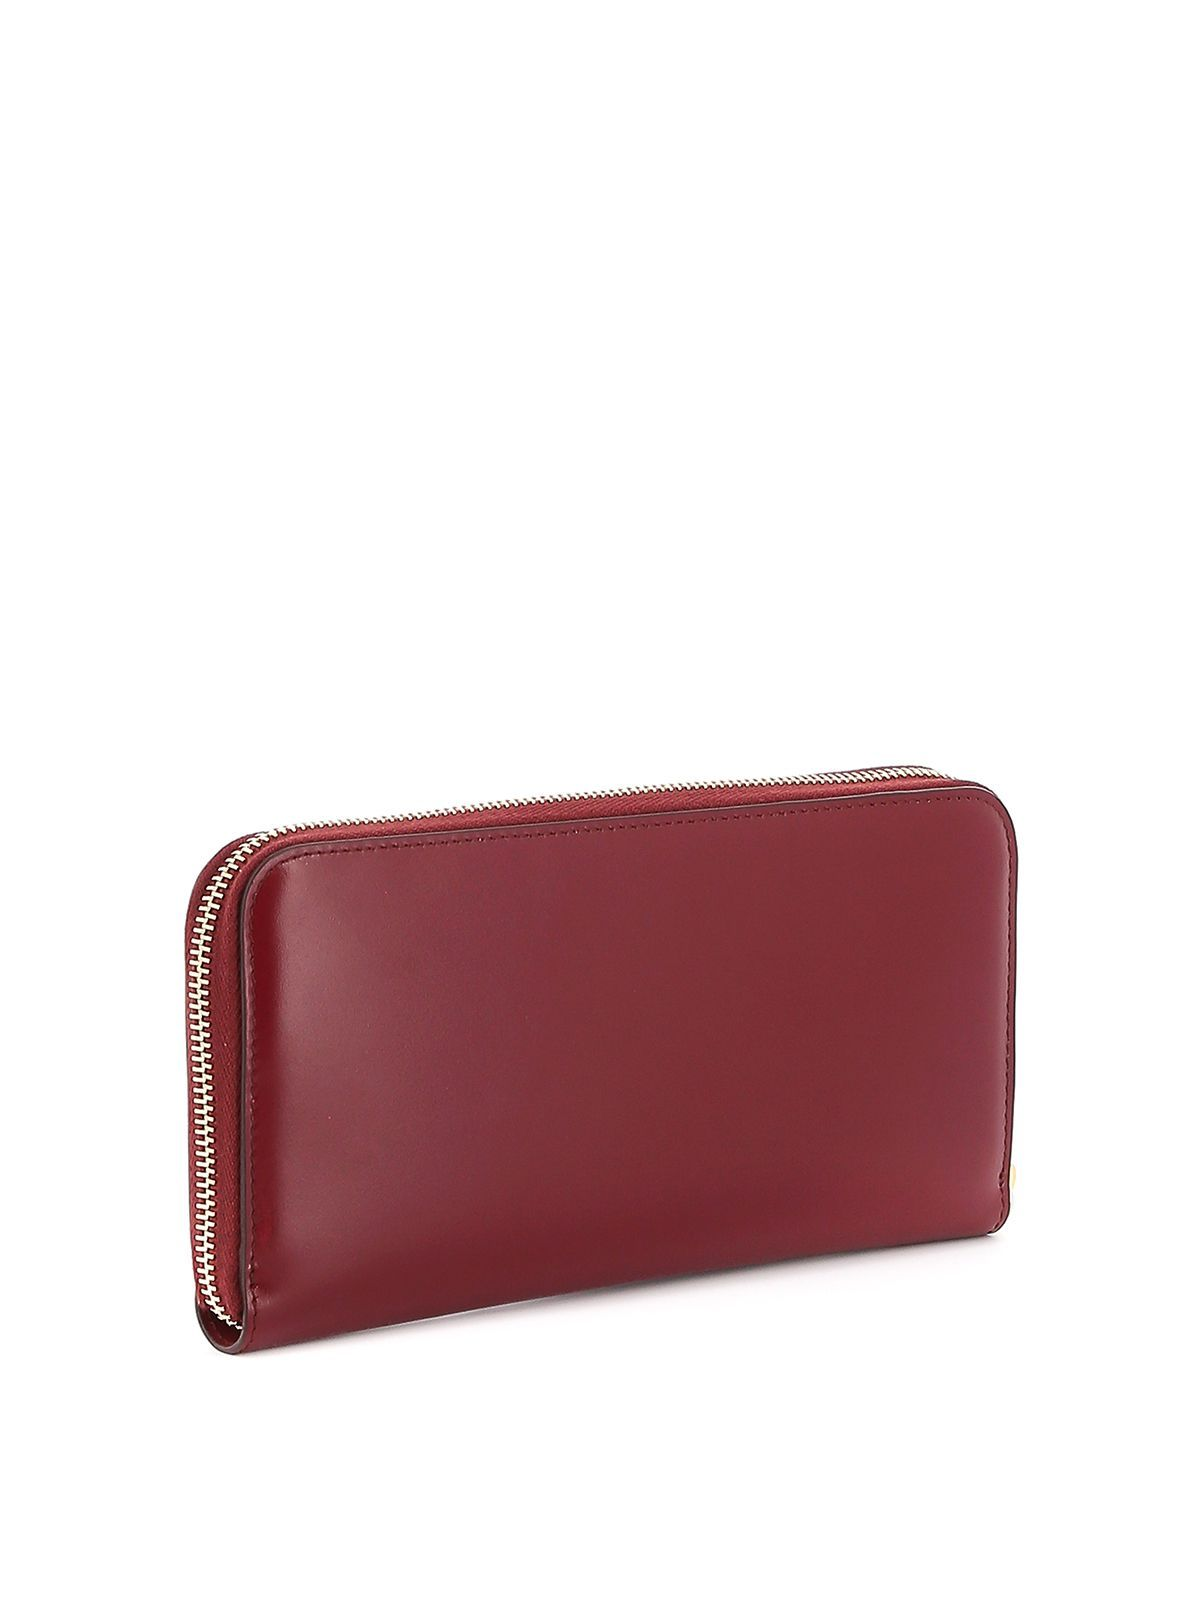 TOD'S WOMEN'S XAWAMEA0400M736Q61 RED LEATHER WALLET